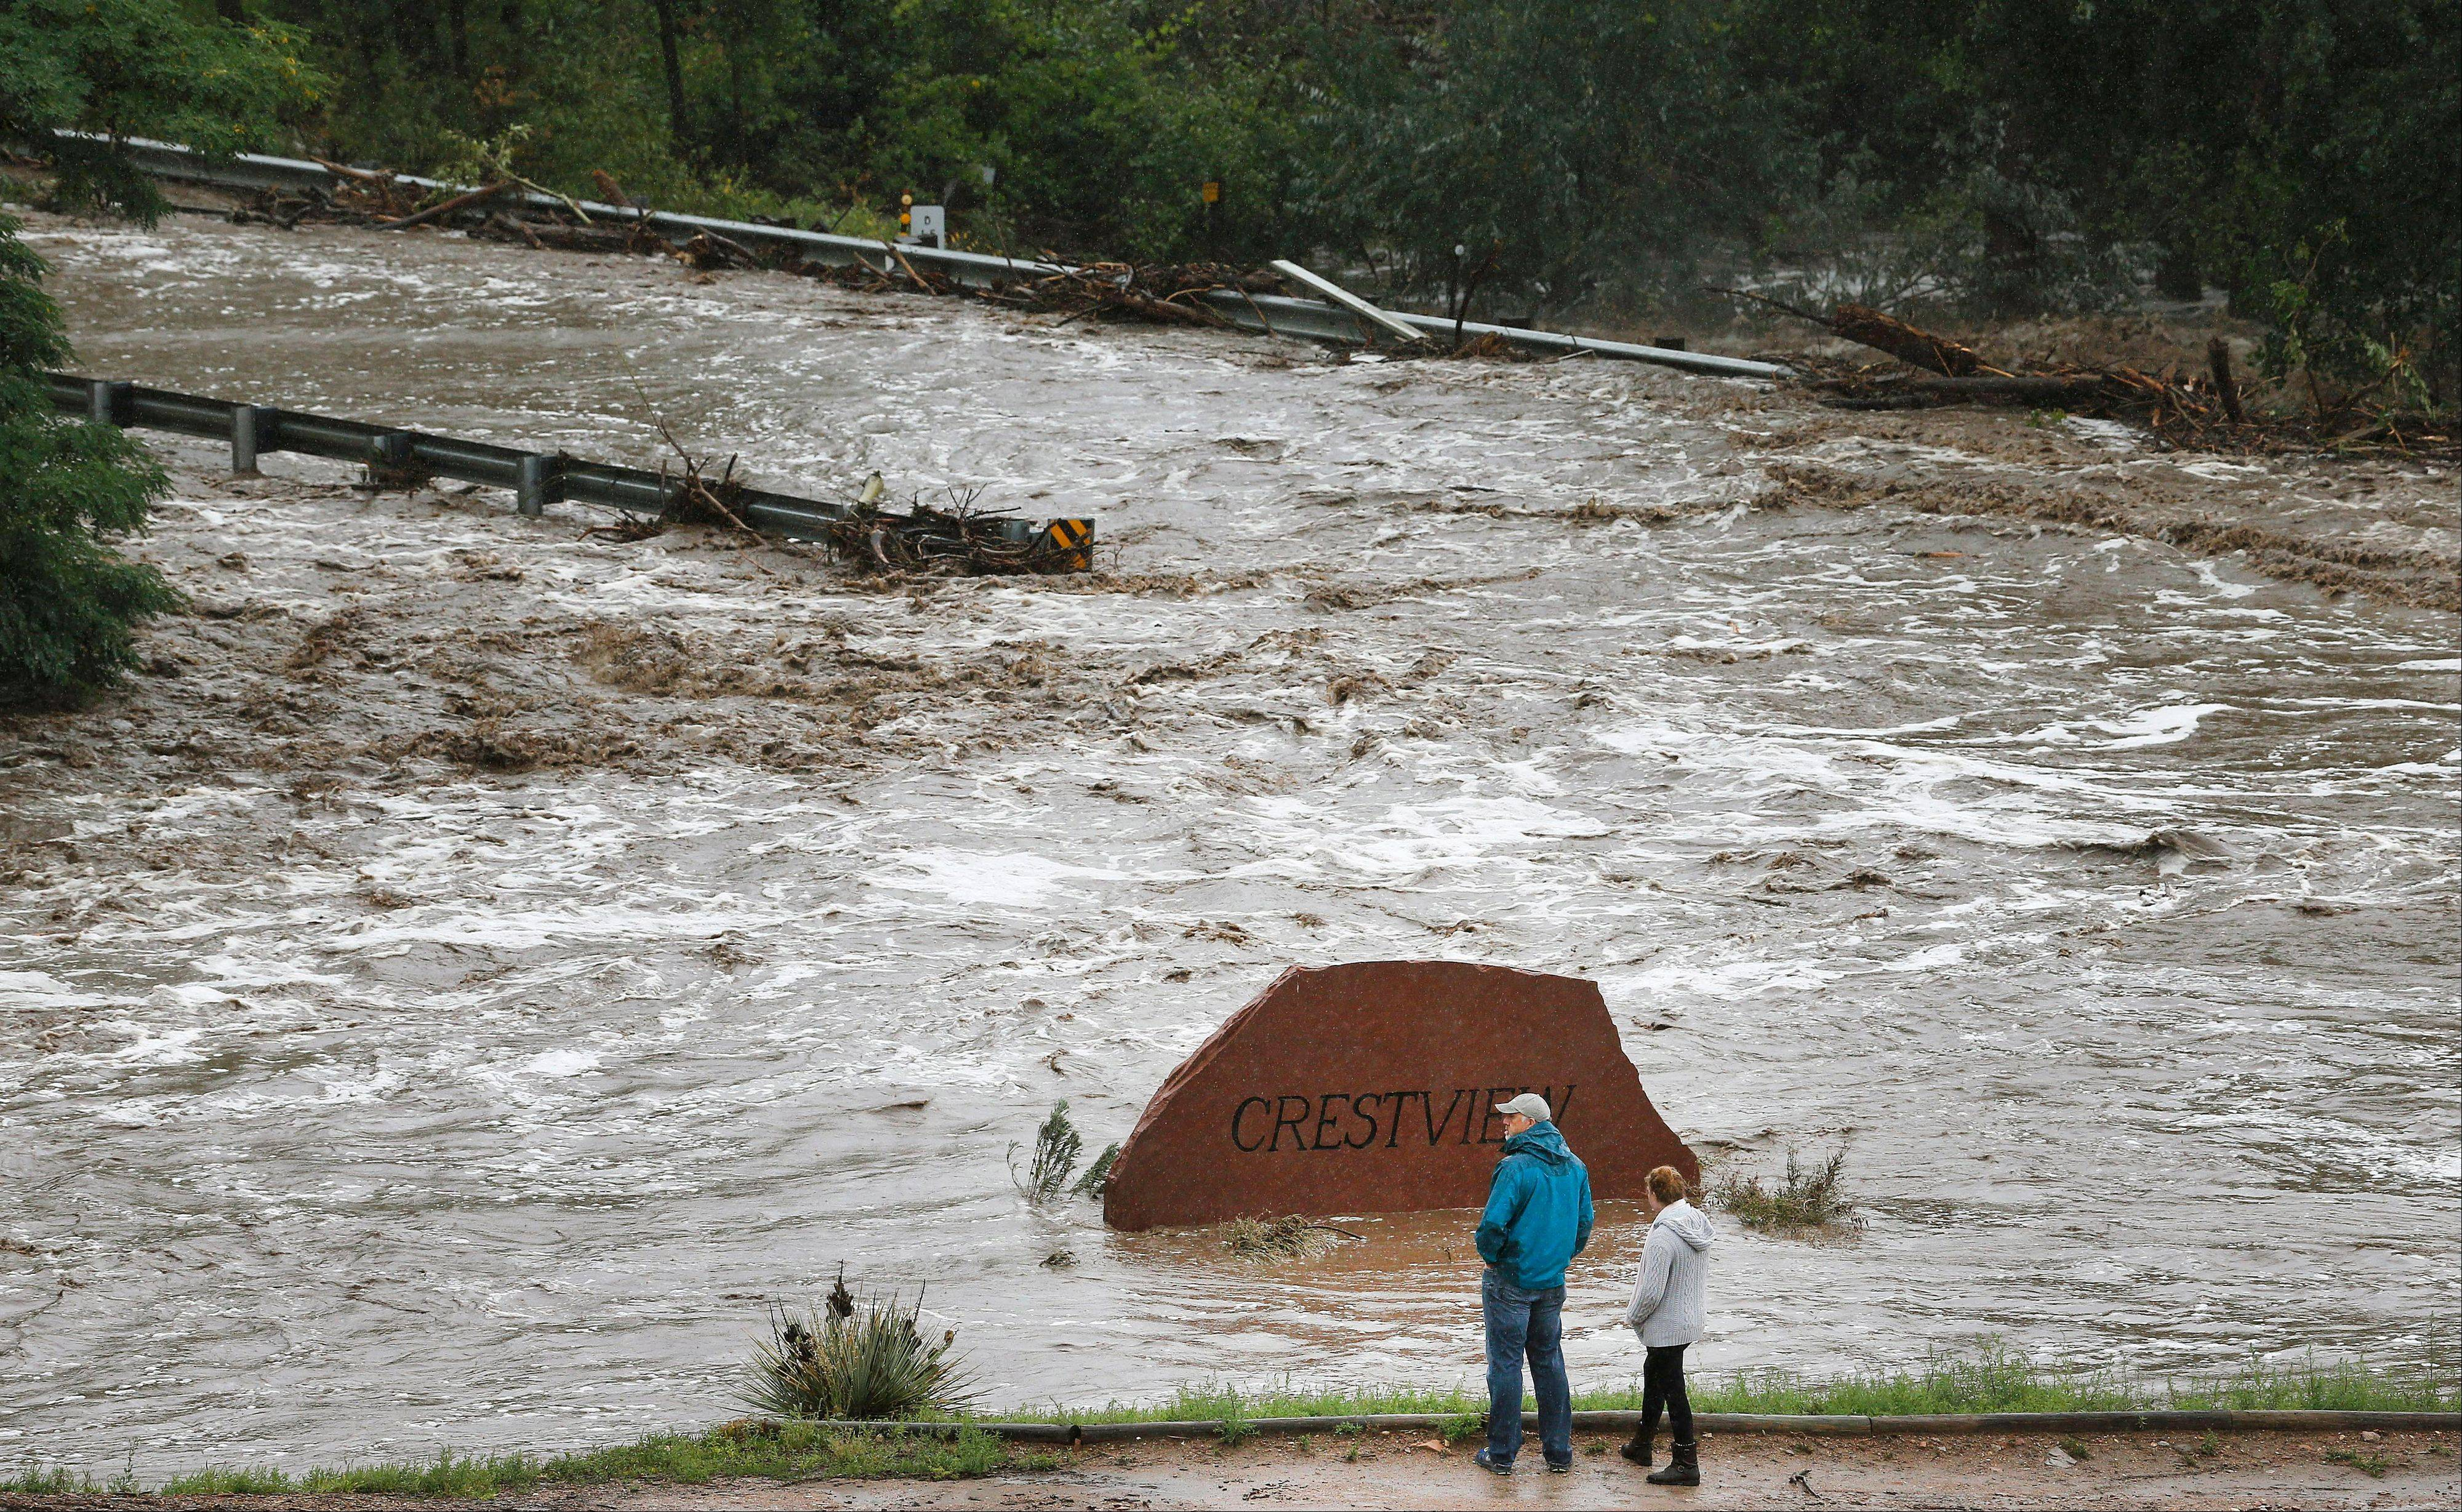 Local residents look over a road washed out by a torrent of water following overnight flash flooding near Left Hand Canyon, south of Lyons, Colo., Thursday, Sept 12, 2013. The widespread high waters are keeping search and rescue teams from reaching stranded residents in Lyons and nearby mountain communities as heavy rains hammered northern Colorado